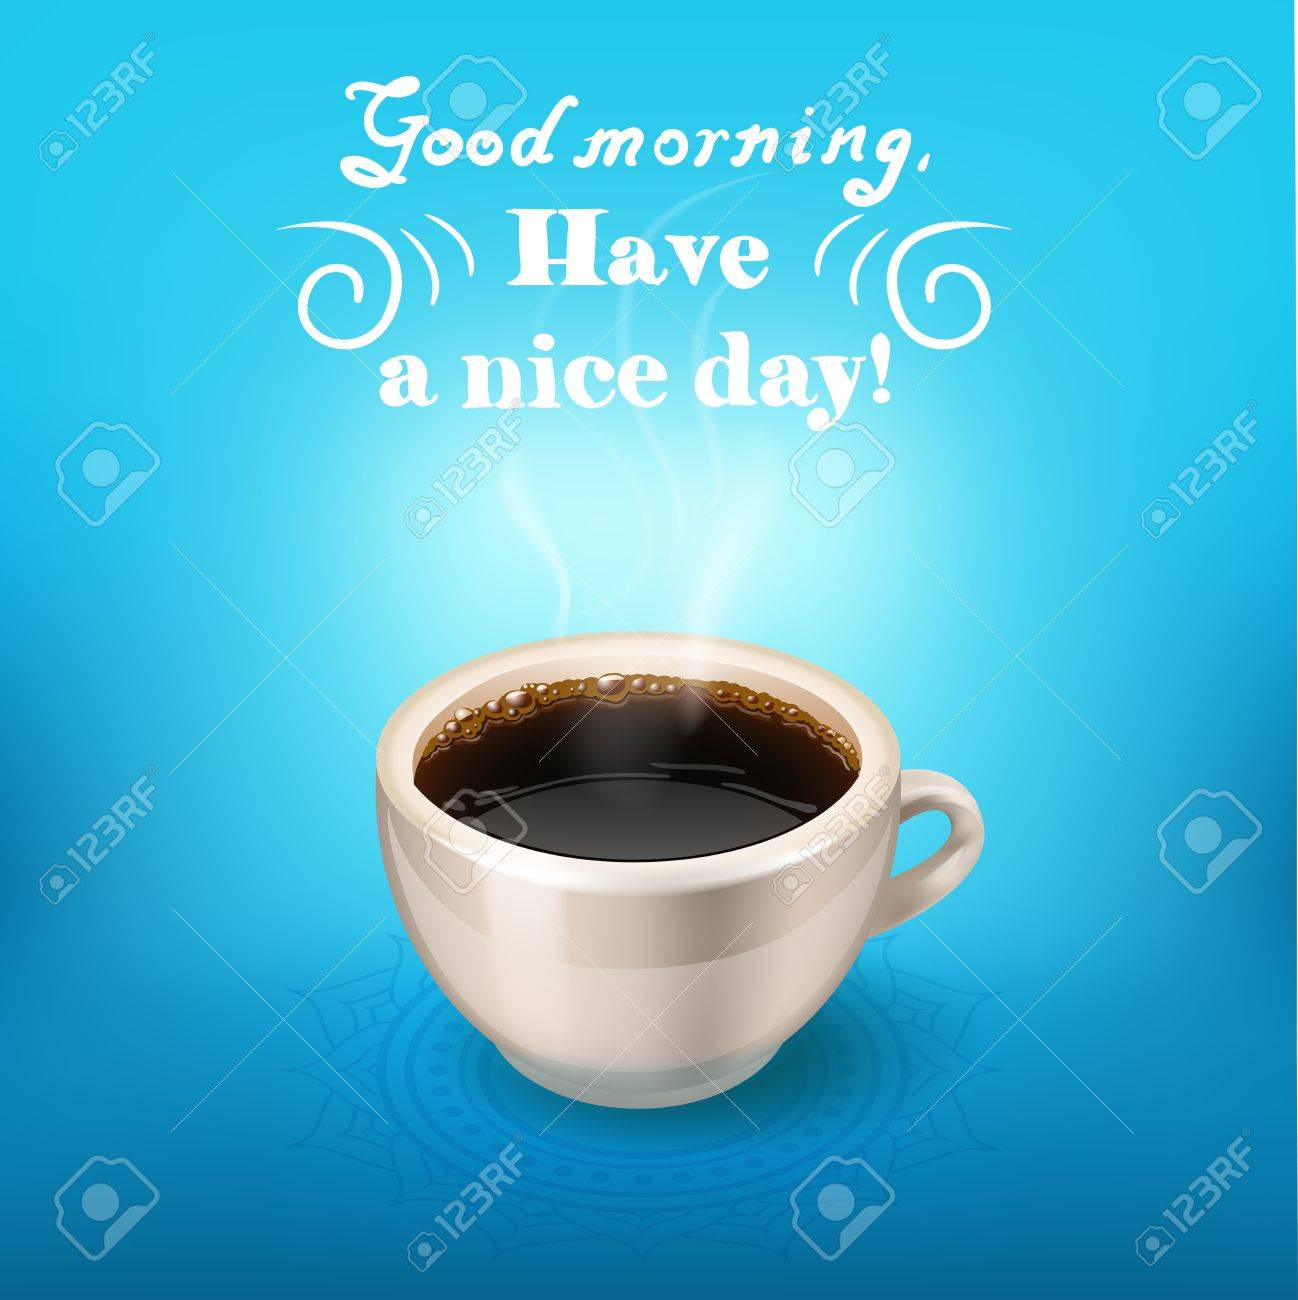 Morning Cup Of Coffee Good Morning Have A Nice Day Royalty Free